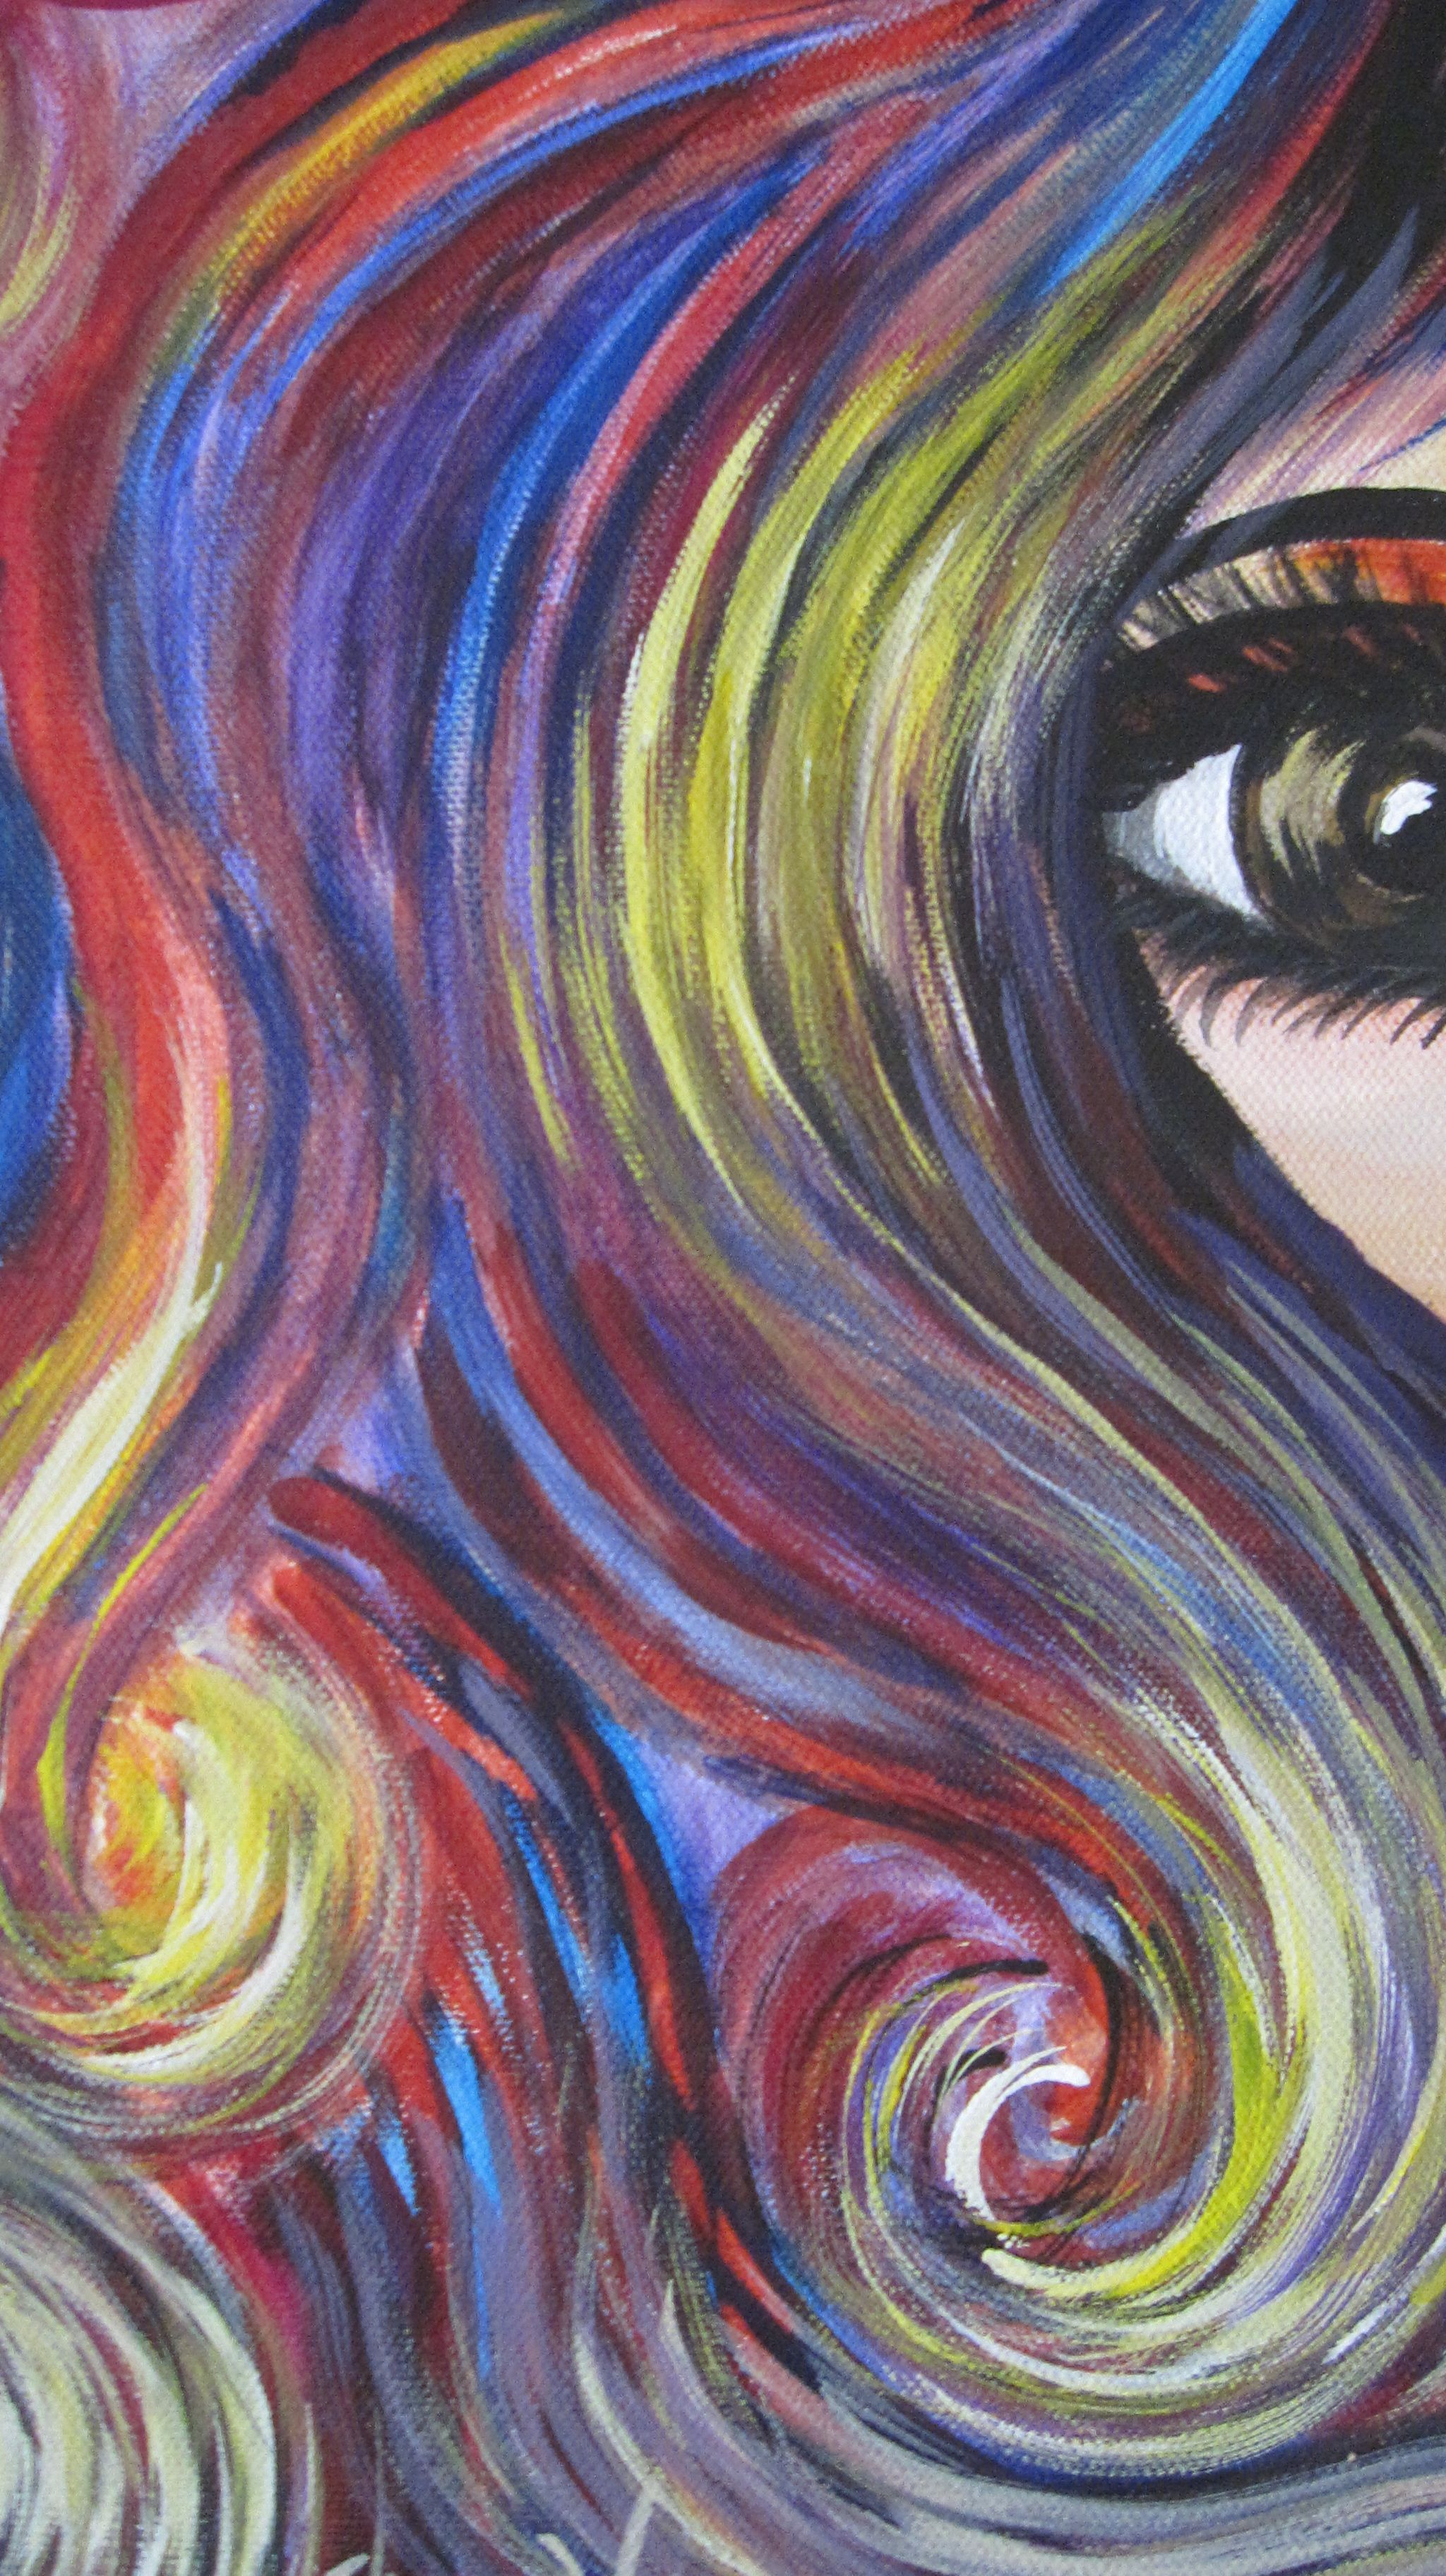 Tammy: Original Acrylic On Canvas. Part Of My Series Of